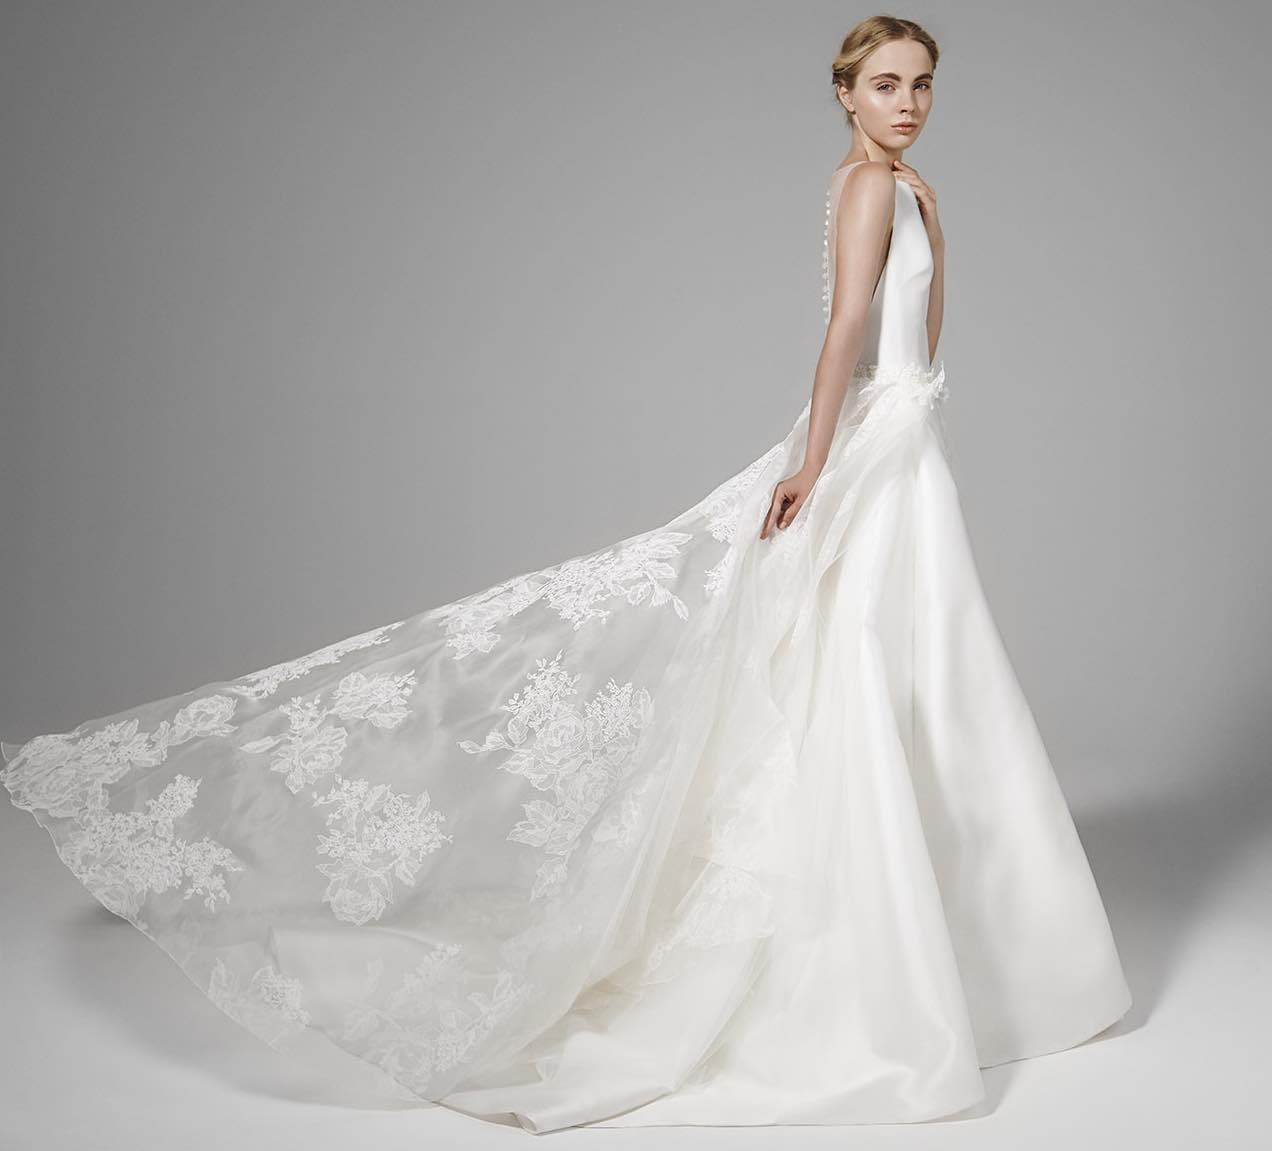 Wedding Dress Photos Whether you're looking for lace or satin, floor-length or short, off-the-shoulder or strapless, WeddingWire has more than 8, wedding dresses to choose from. You can search for styles in every silhouette, including mermaid, ball gown, A-line and more.